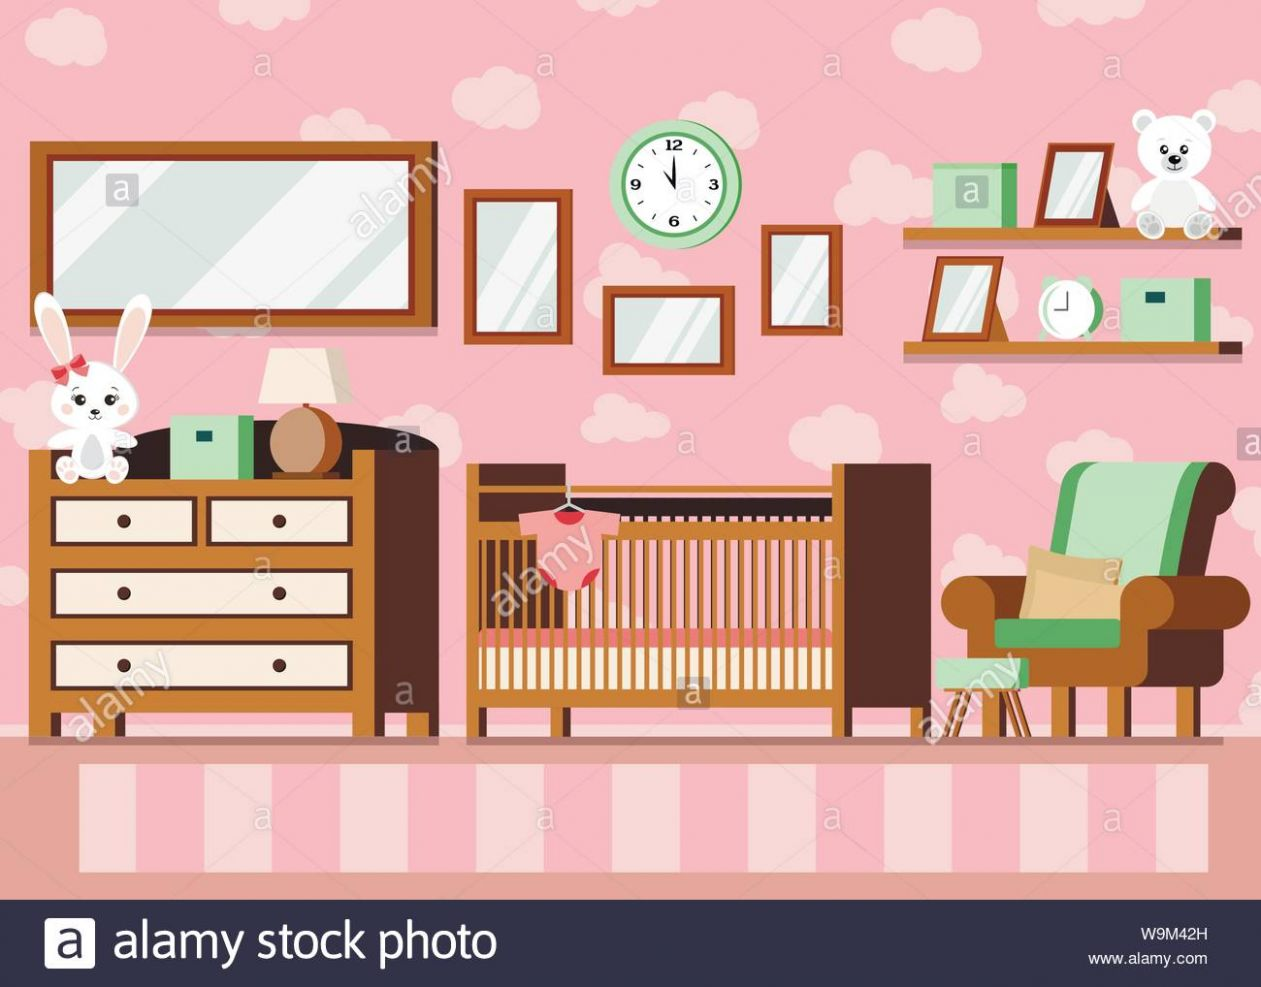 Cozy girl s baby room interior pink color background Stock Vector ..